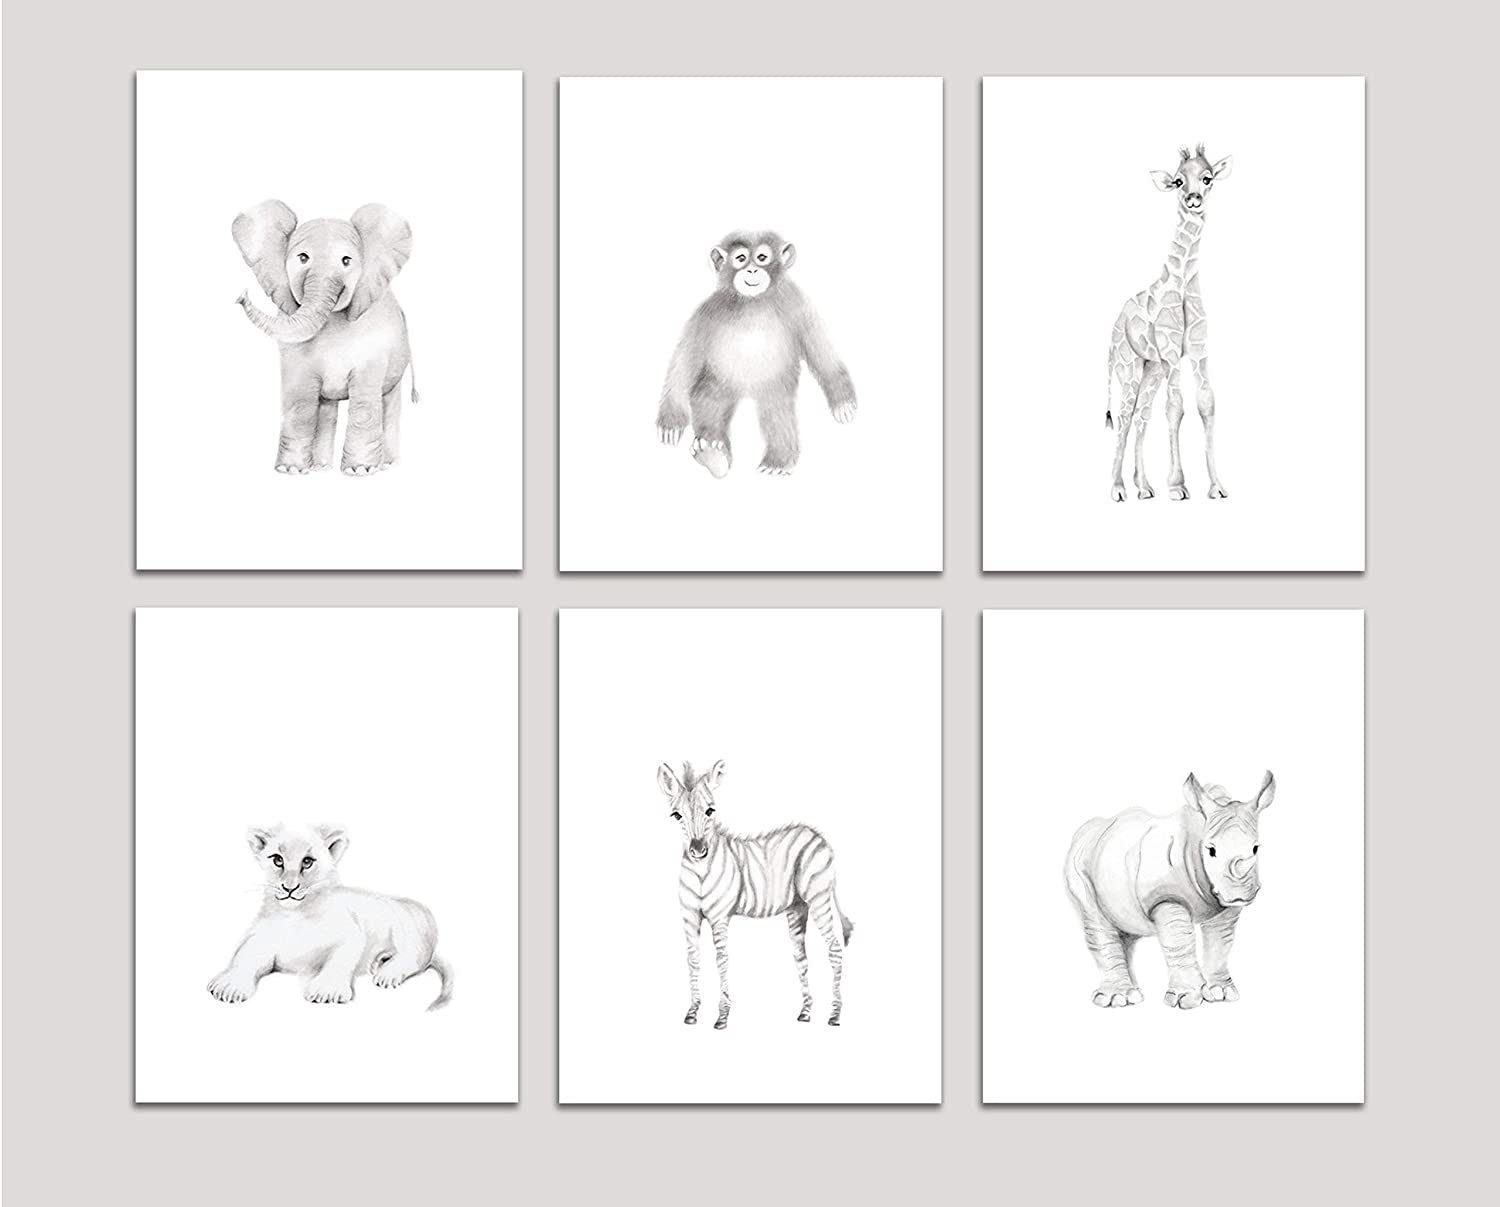 Amazon com safari nursery art set of 6 prints pencil drawing prints elephant giraffe monkey lion zebra rhino various sizes available